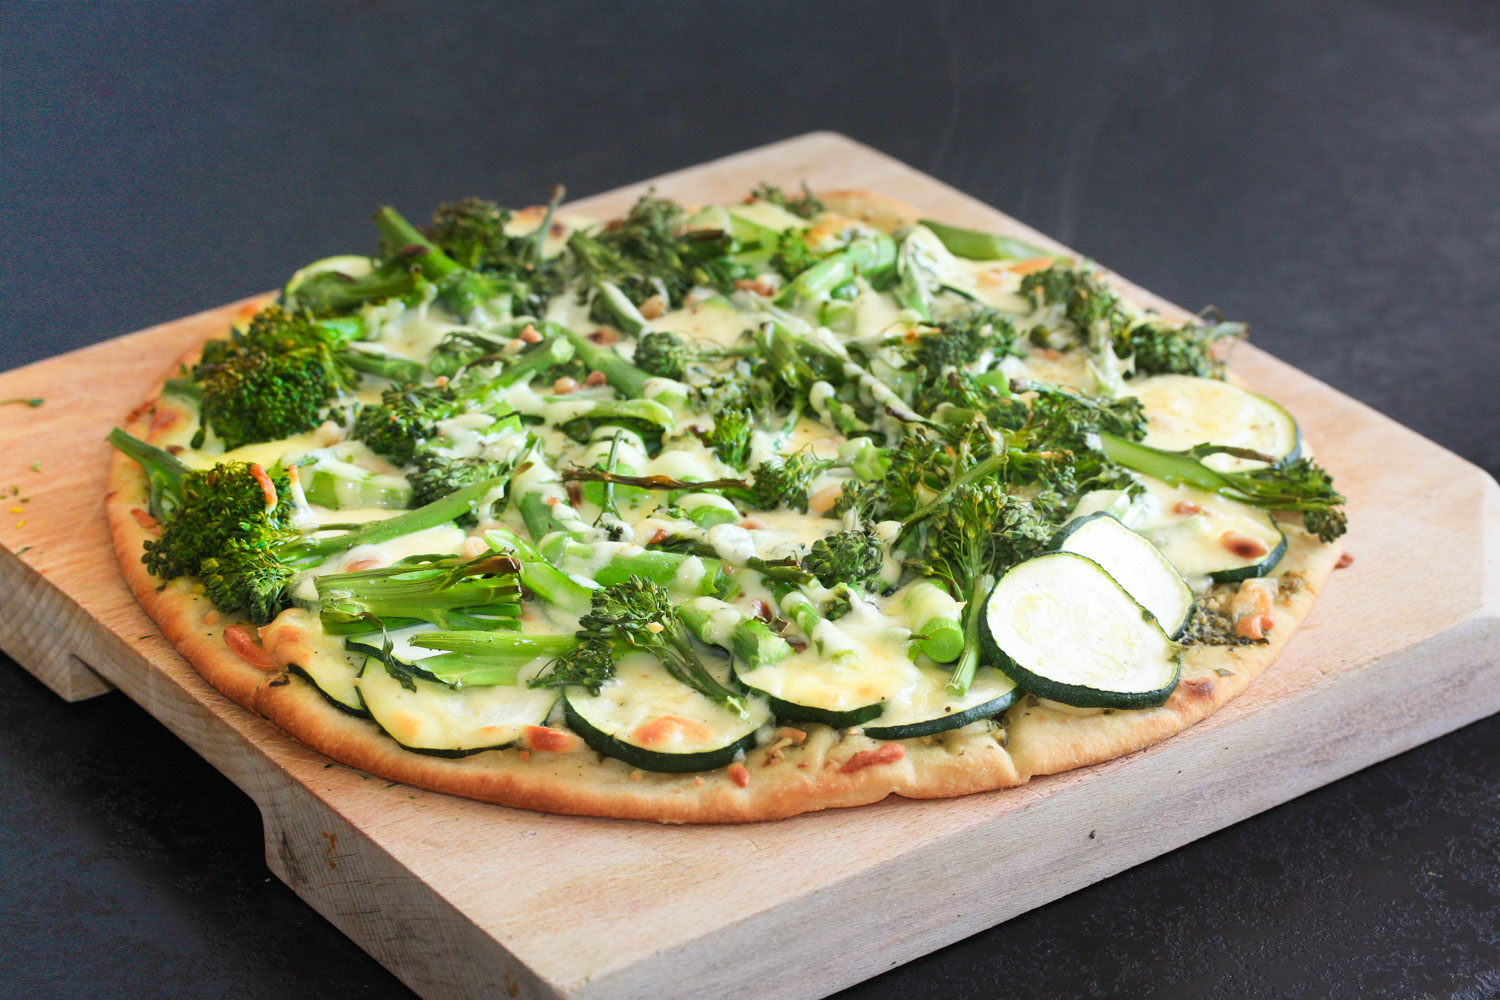 Broccolini and pesto pizza with rocket and pine nuts